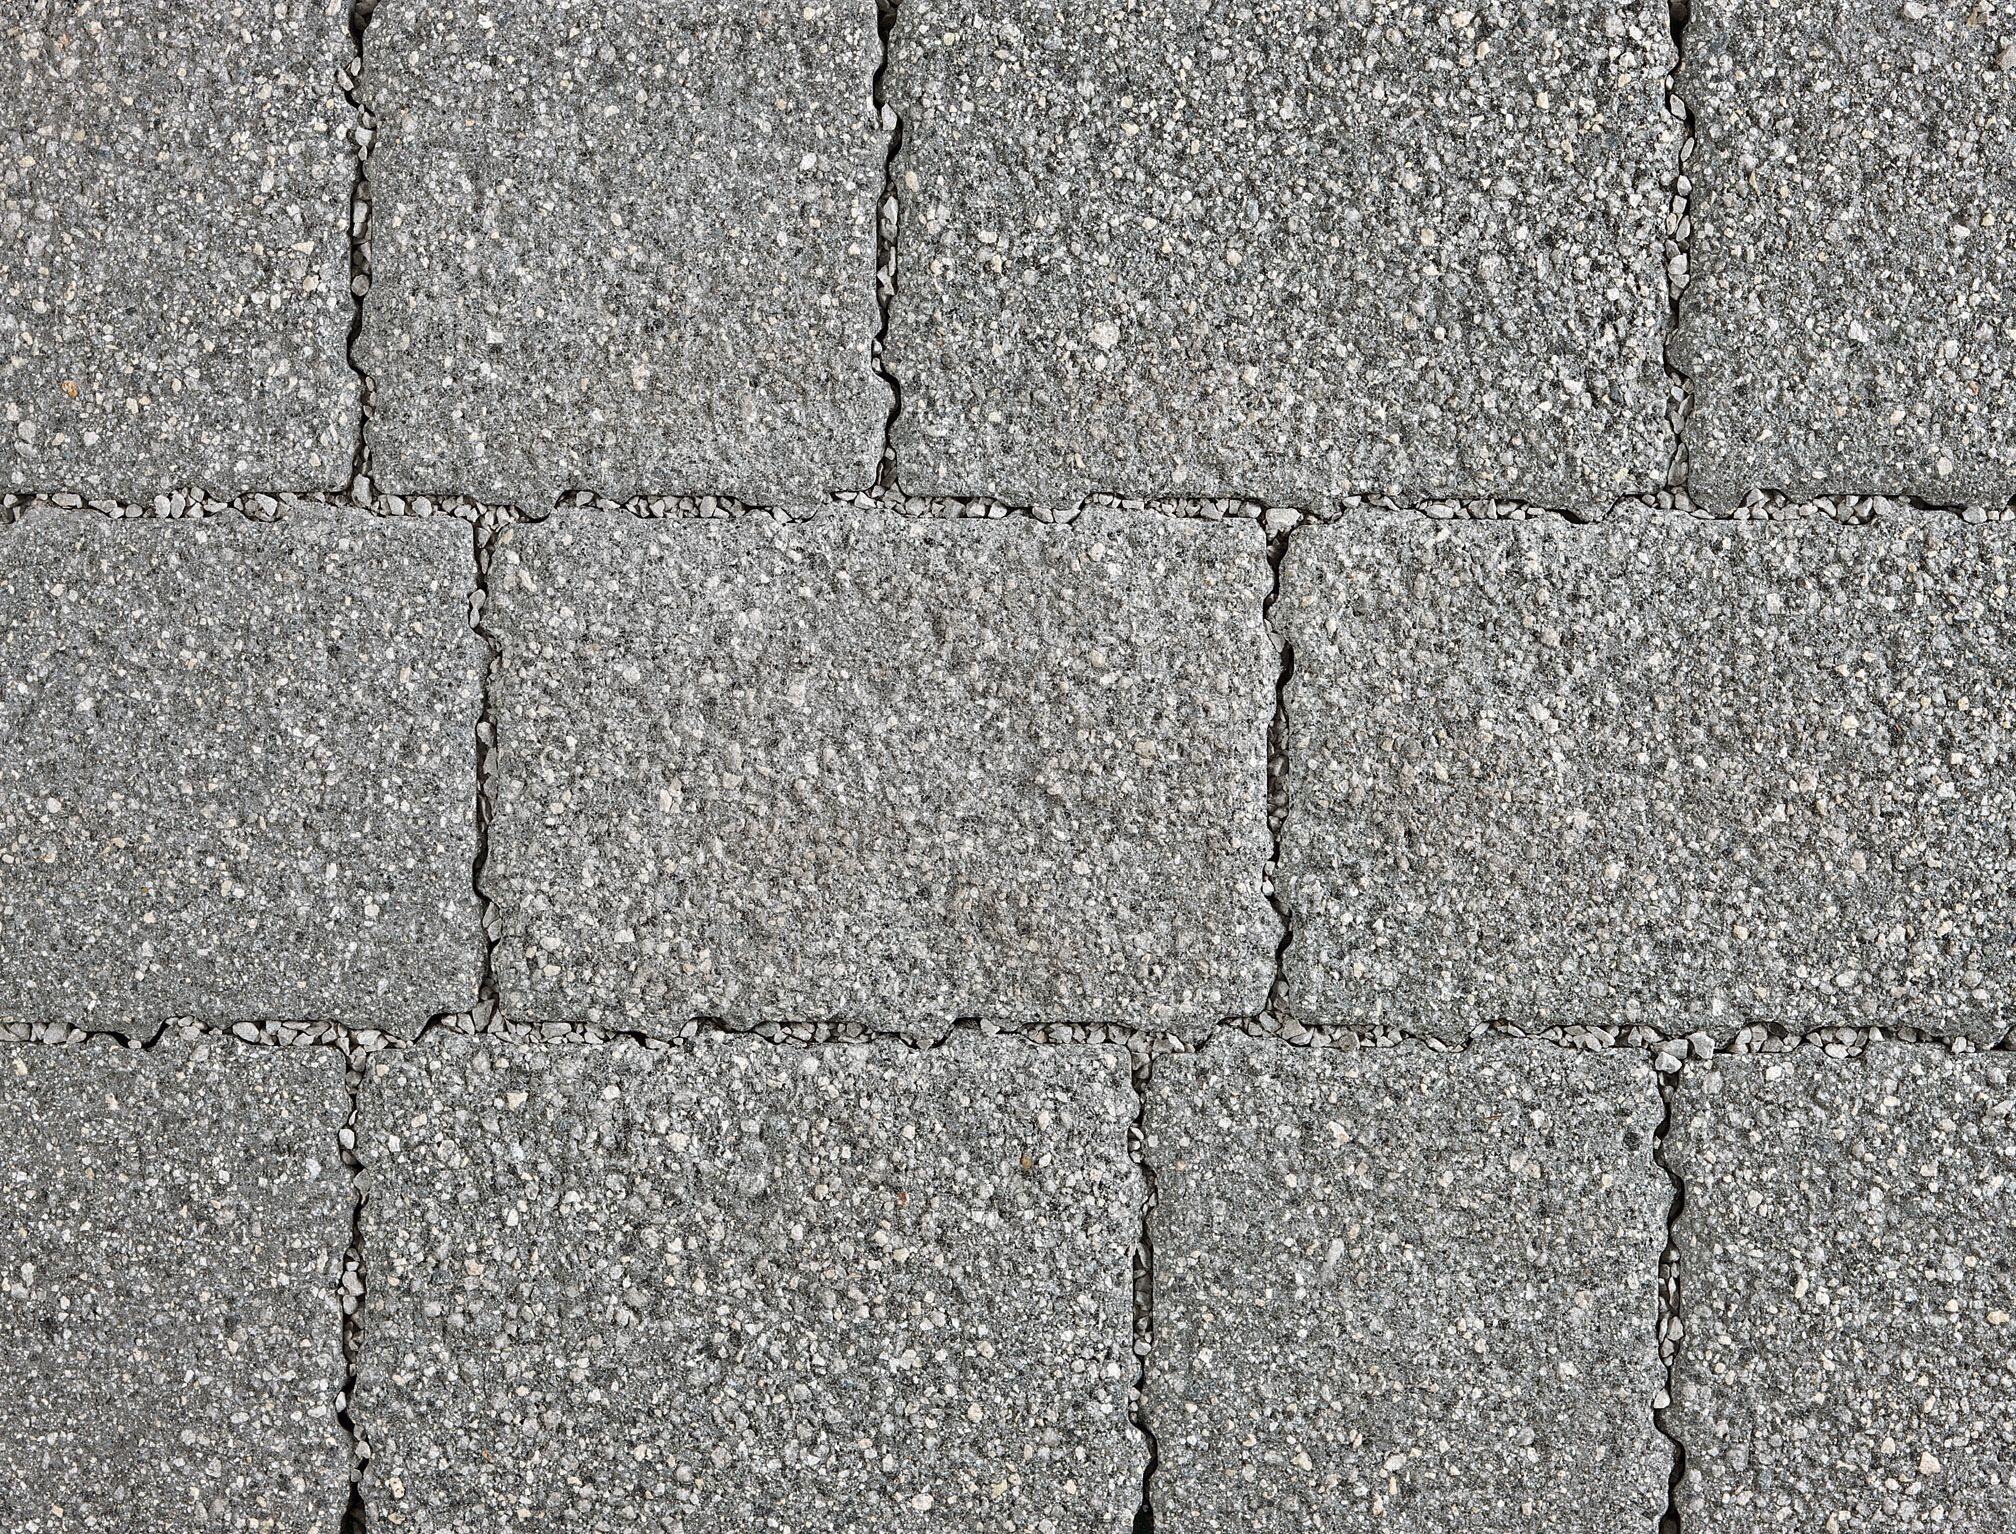 Drivesett argent priora block paving project Blockbauprojekt Check Stock At Your Local Branch Travis Perkins Marshalls Drivesett Argent Priora Block Paving Dark Project Pack